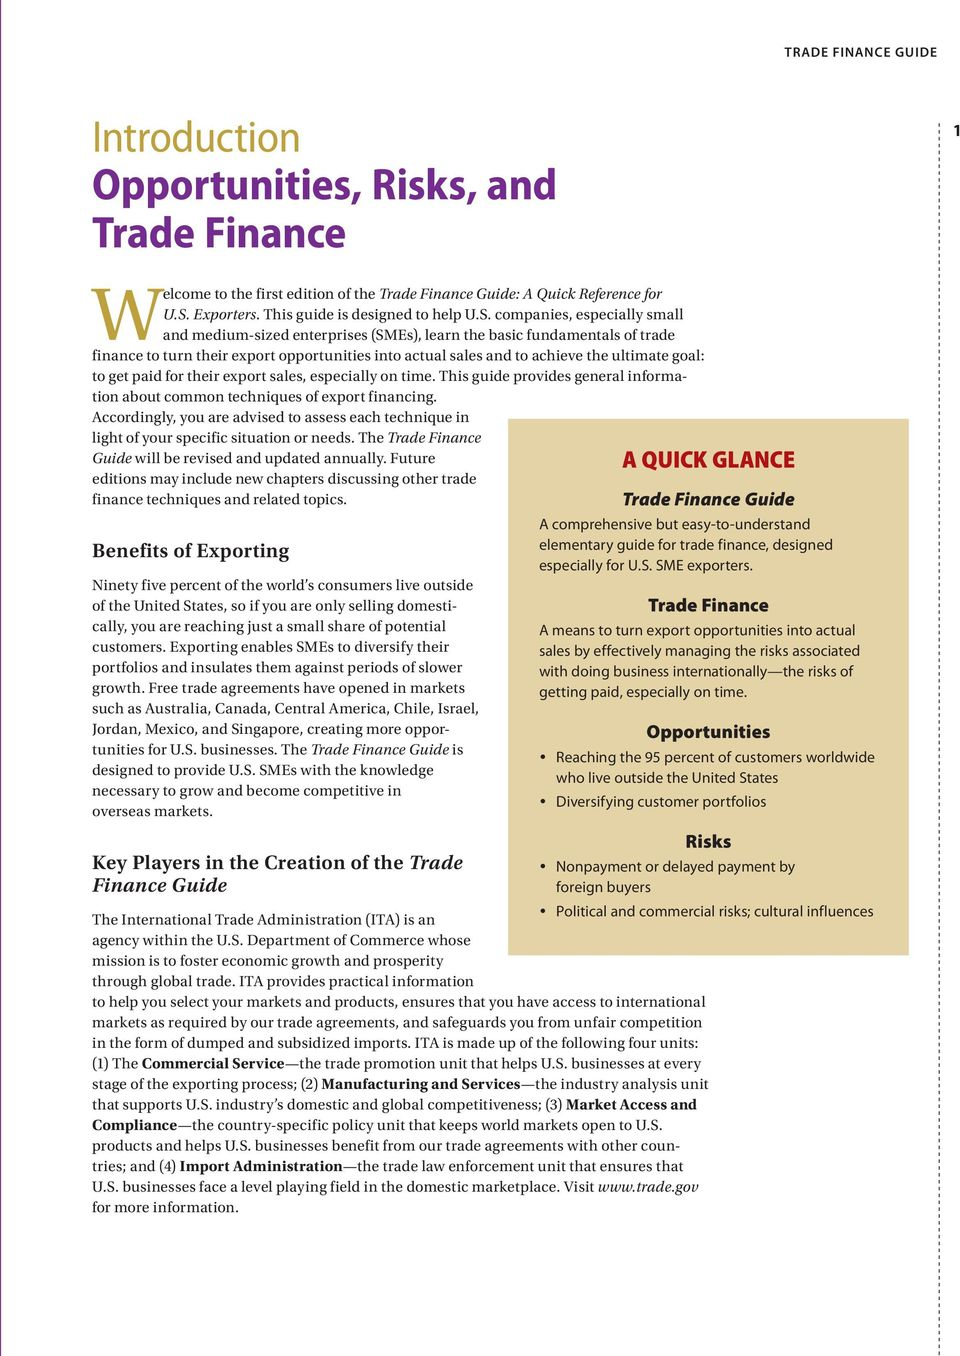 companies, especially small and medium-sized enterprises (SMEs), learn the basic fundamentals of trade finance to turn their export opportunities into actual sales and to achieve the ultimate goal: